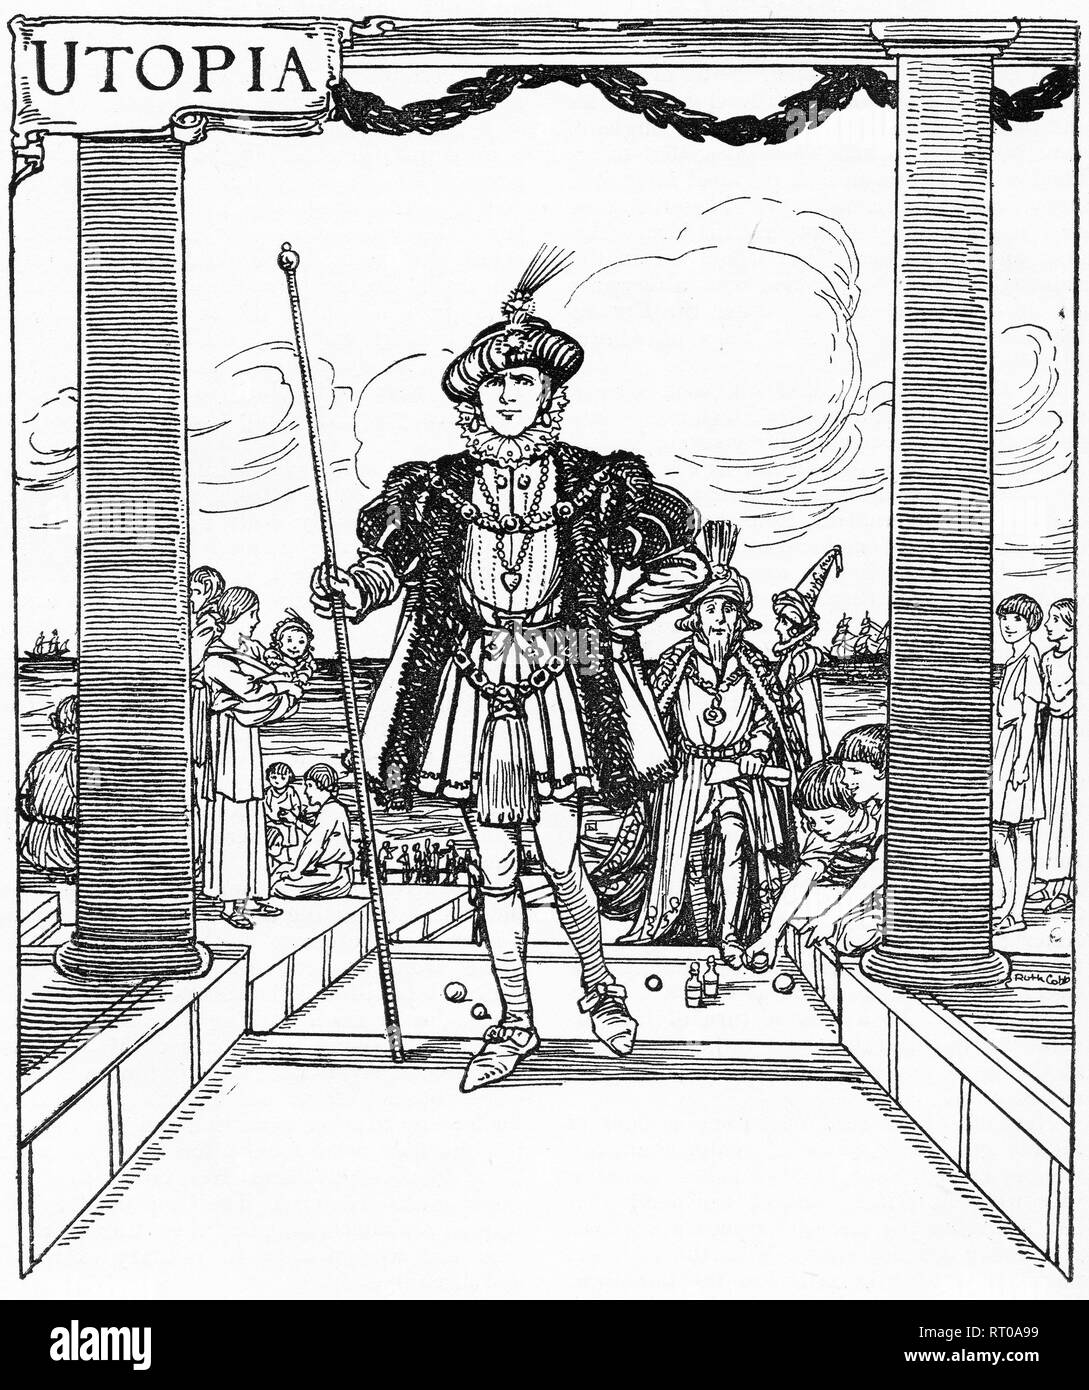 Fanciful engraving of a man being welcomed into Sir Thomas More's Utopia. From Chatterbox magazine, 1925 - Stock Image